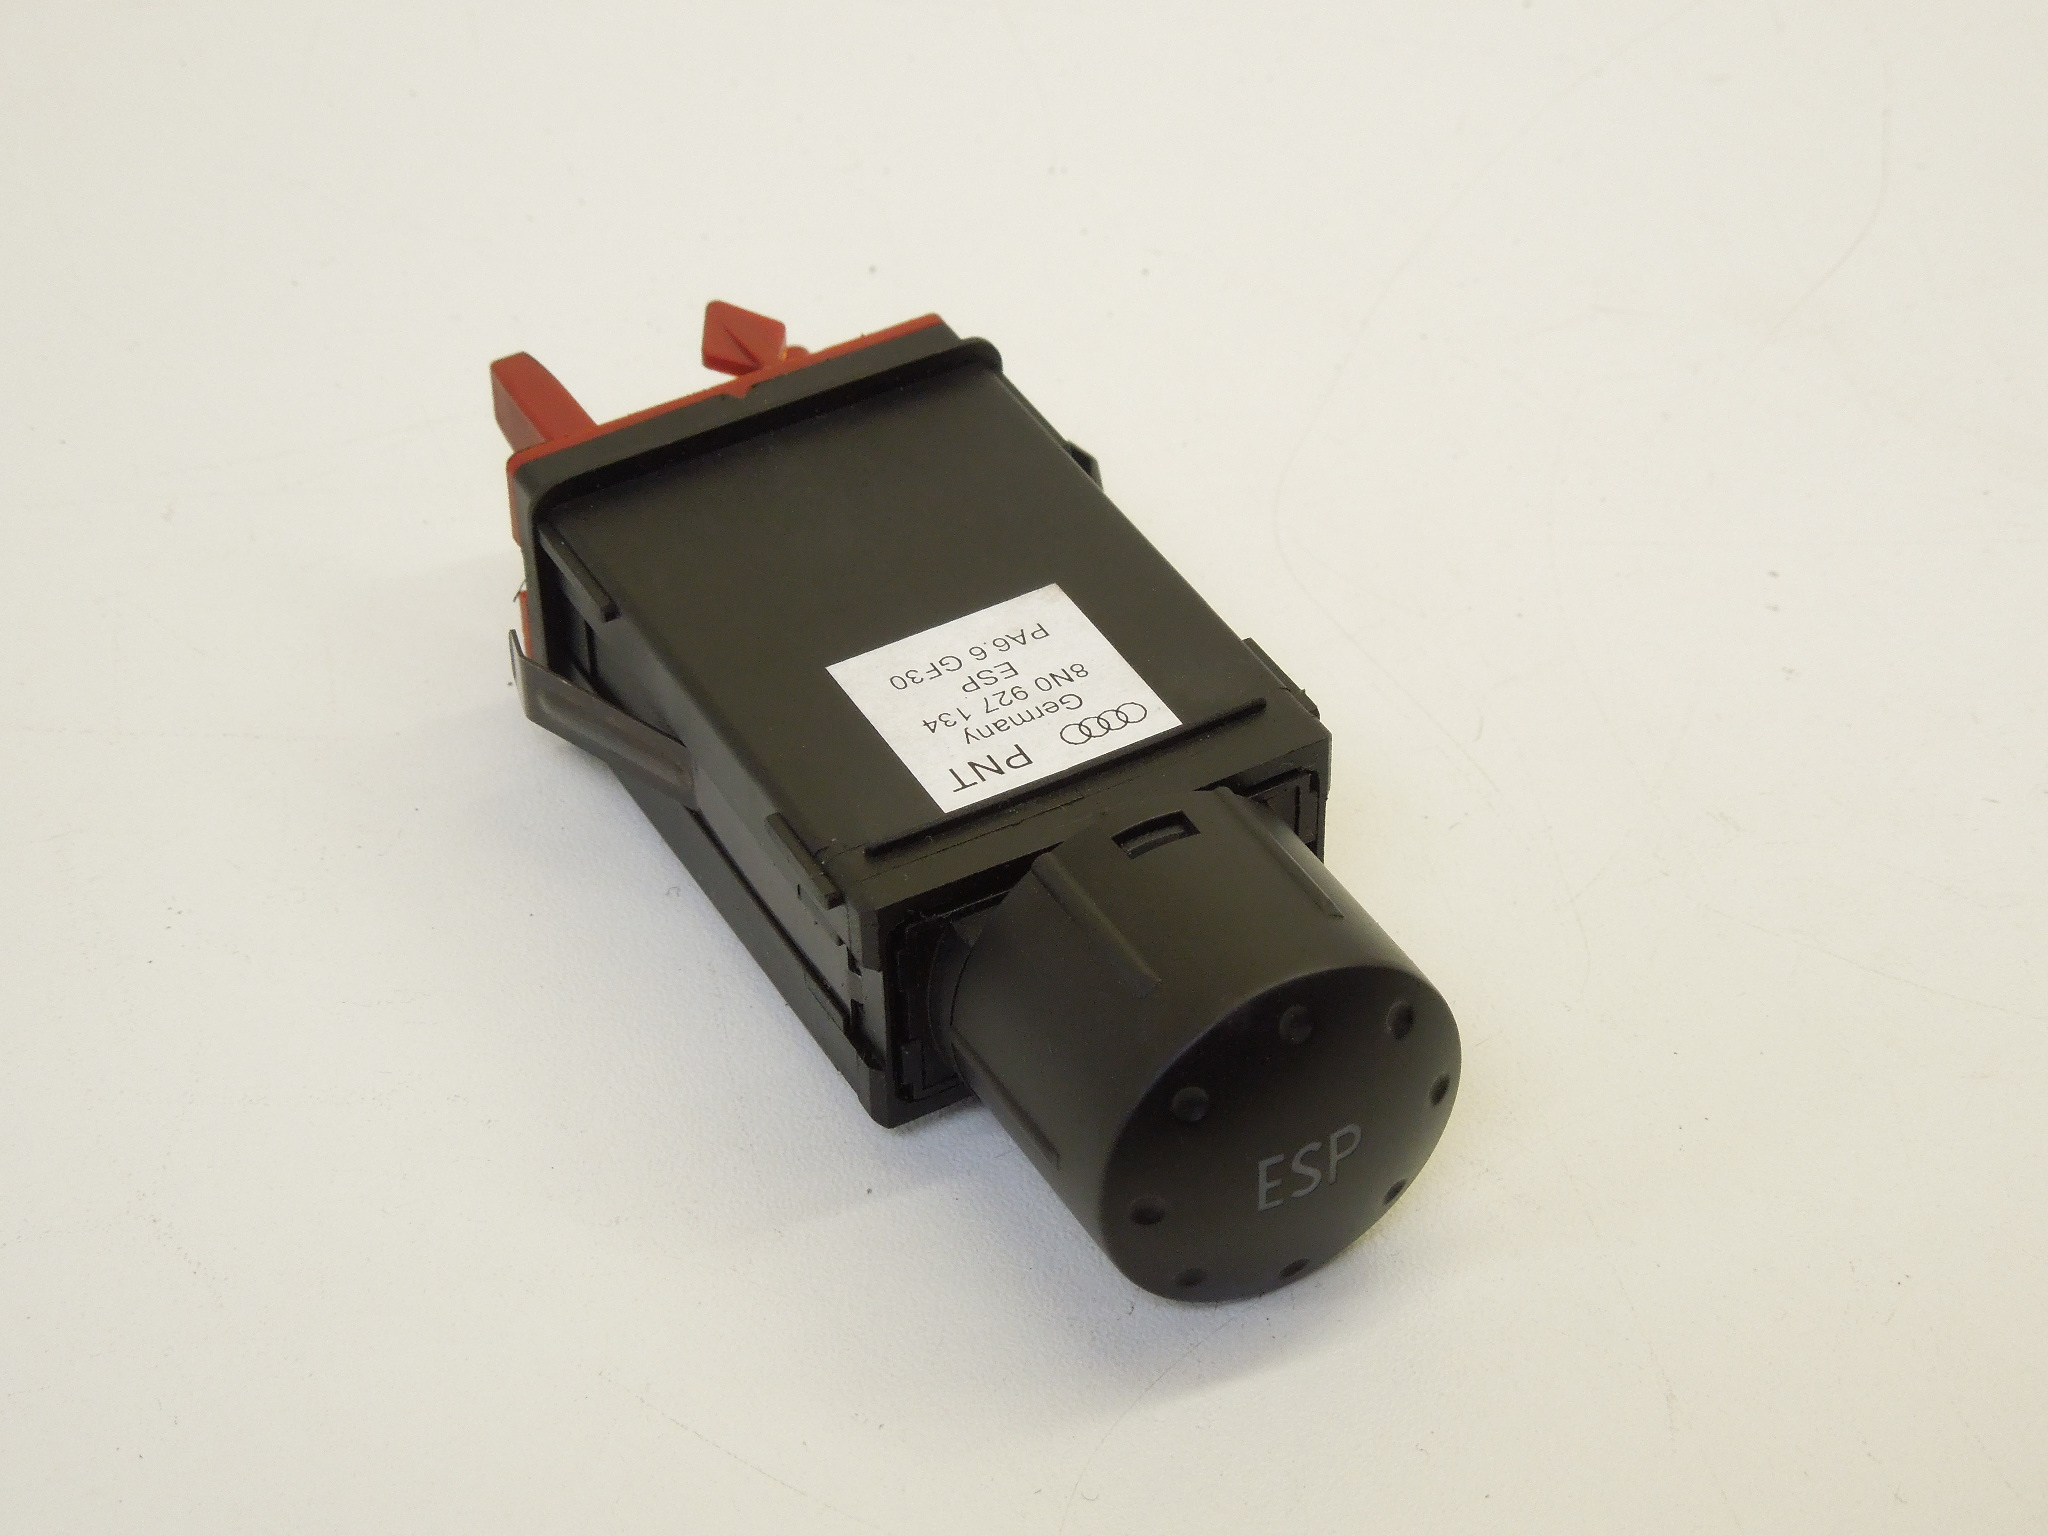 Audi TT 8N ESP Switch Button #28 8N0927134